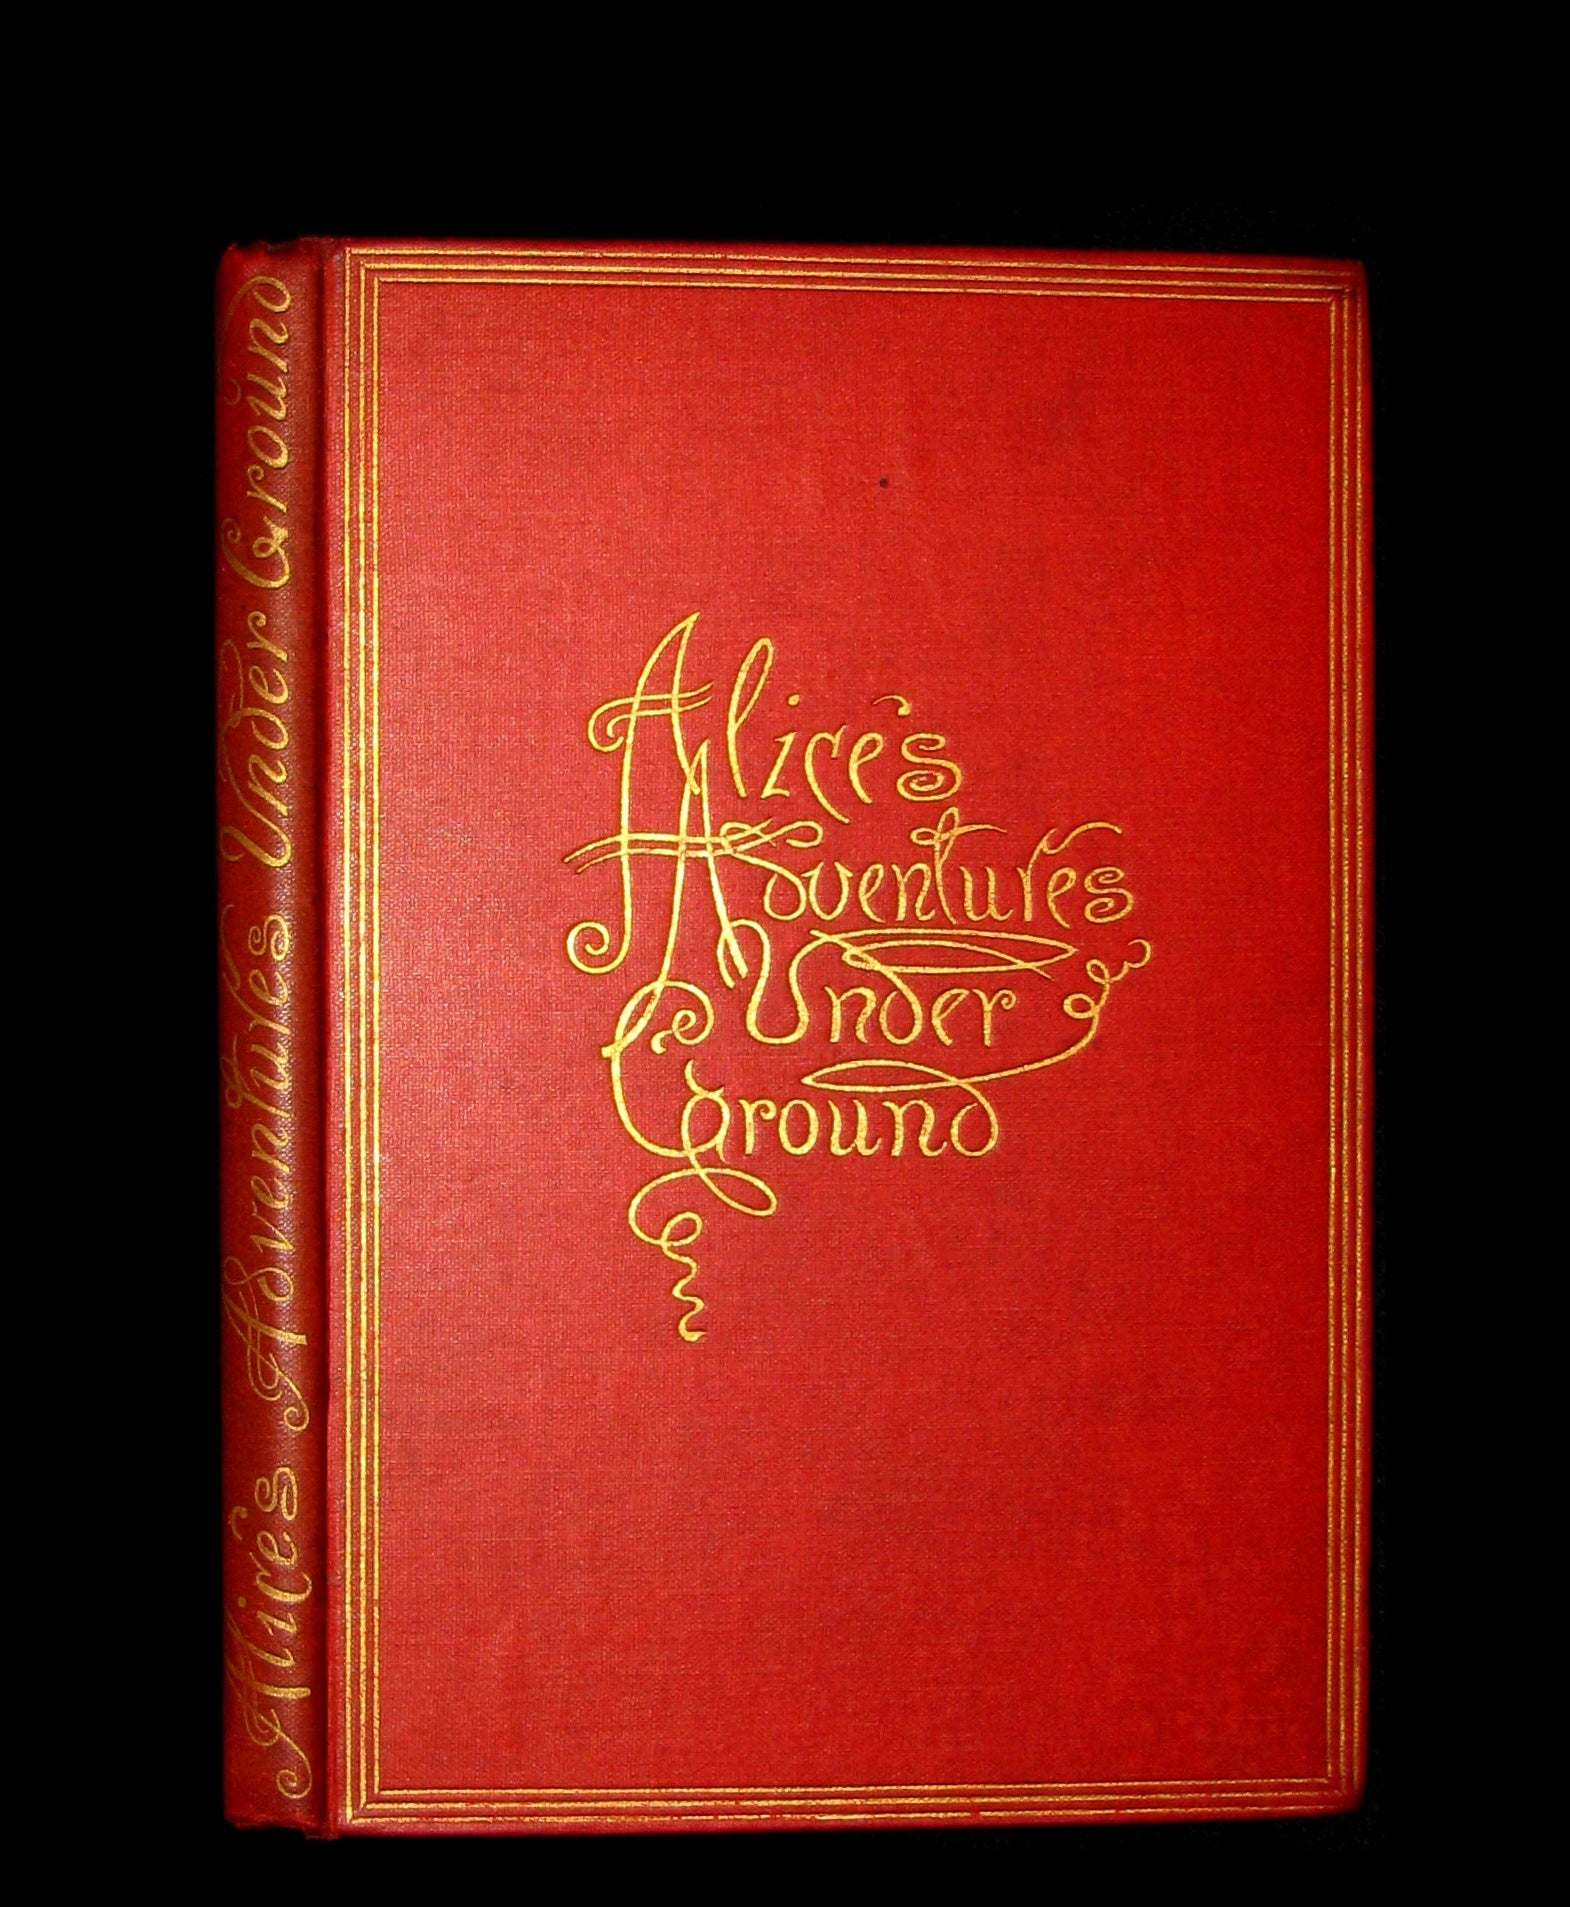 1886 Rare 1st Edition - Alice's Adventures Under Ground illustrated by Lewis Carroll.